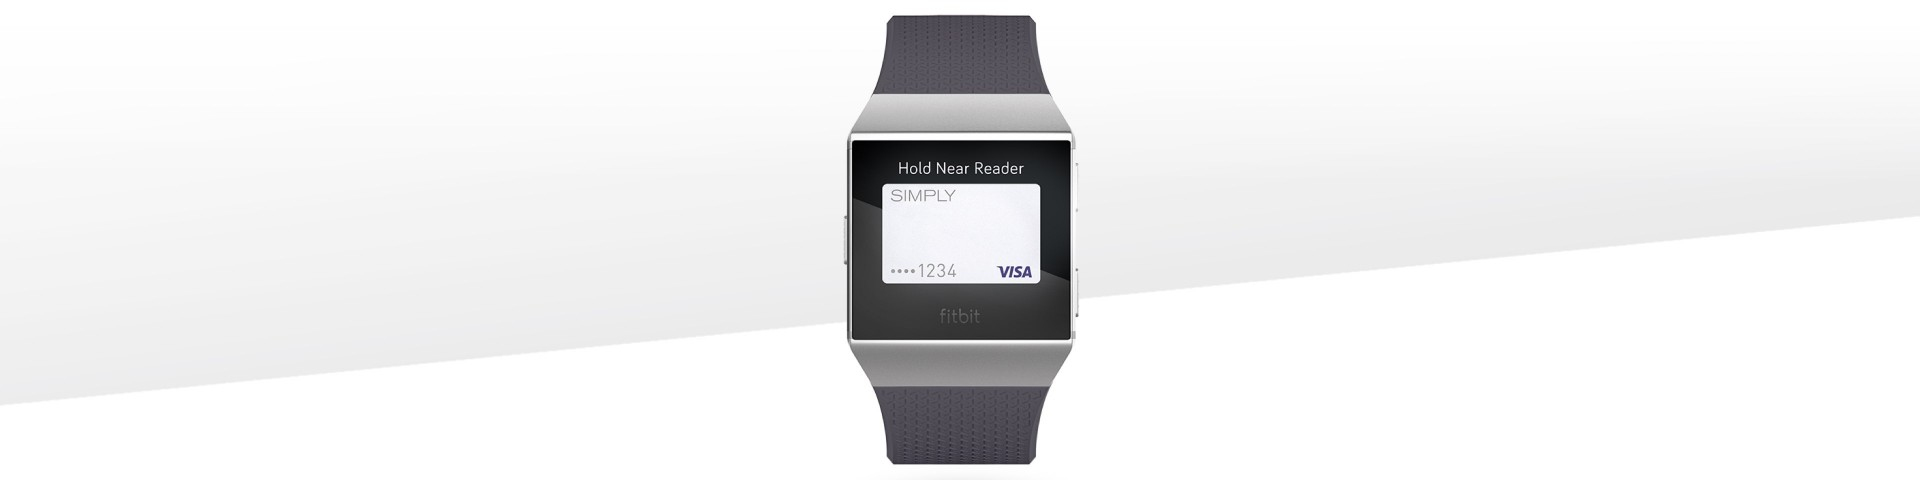 Fitbit Pay Watch